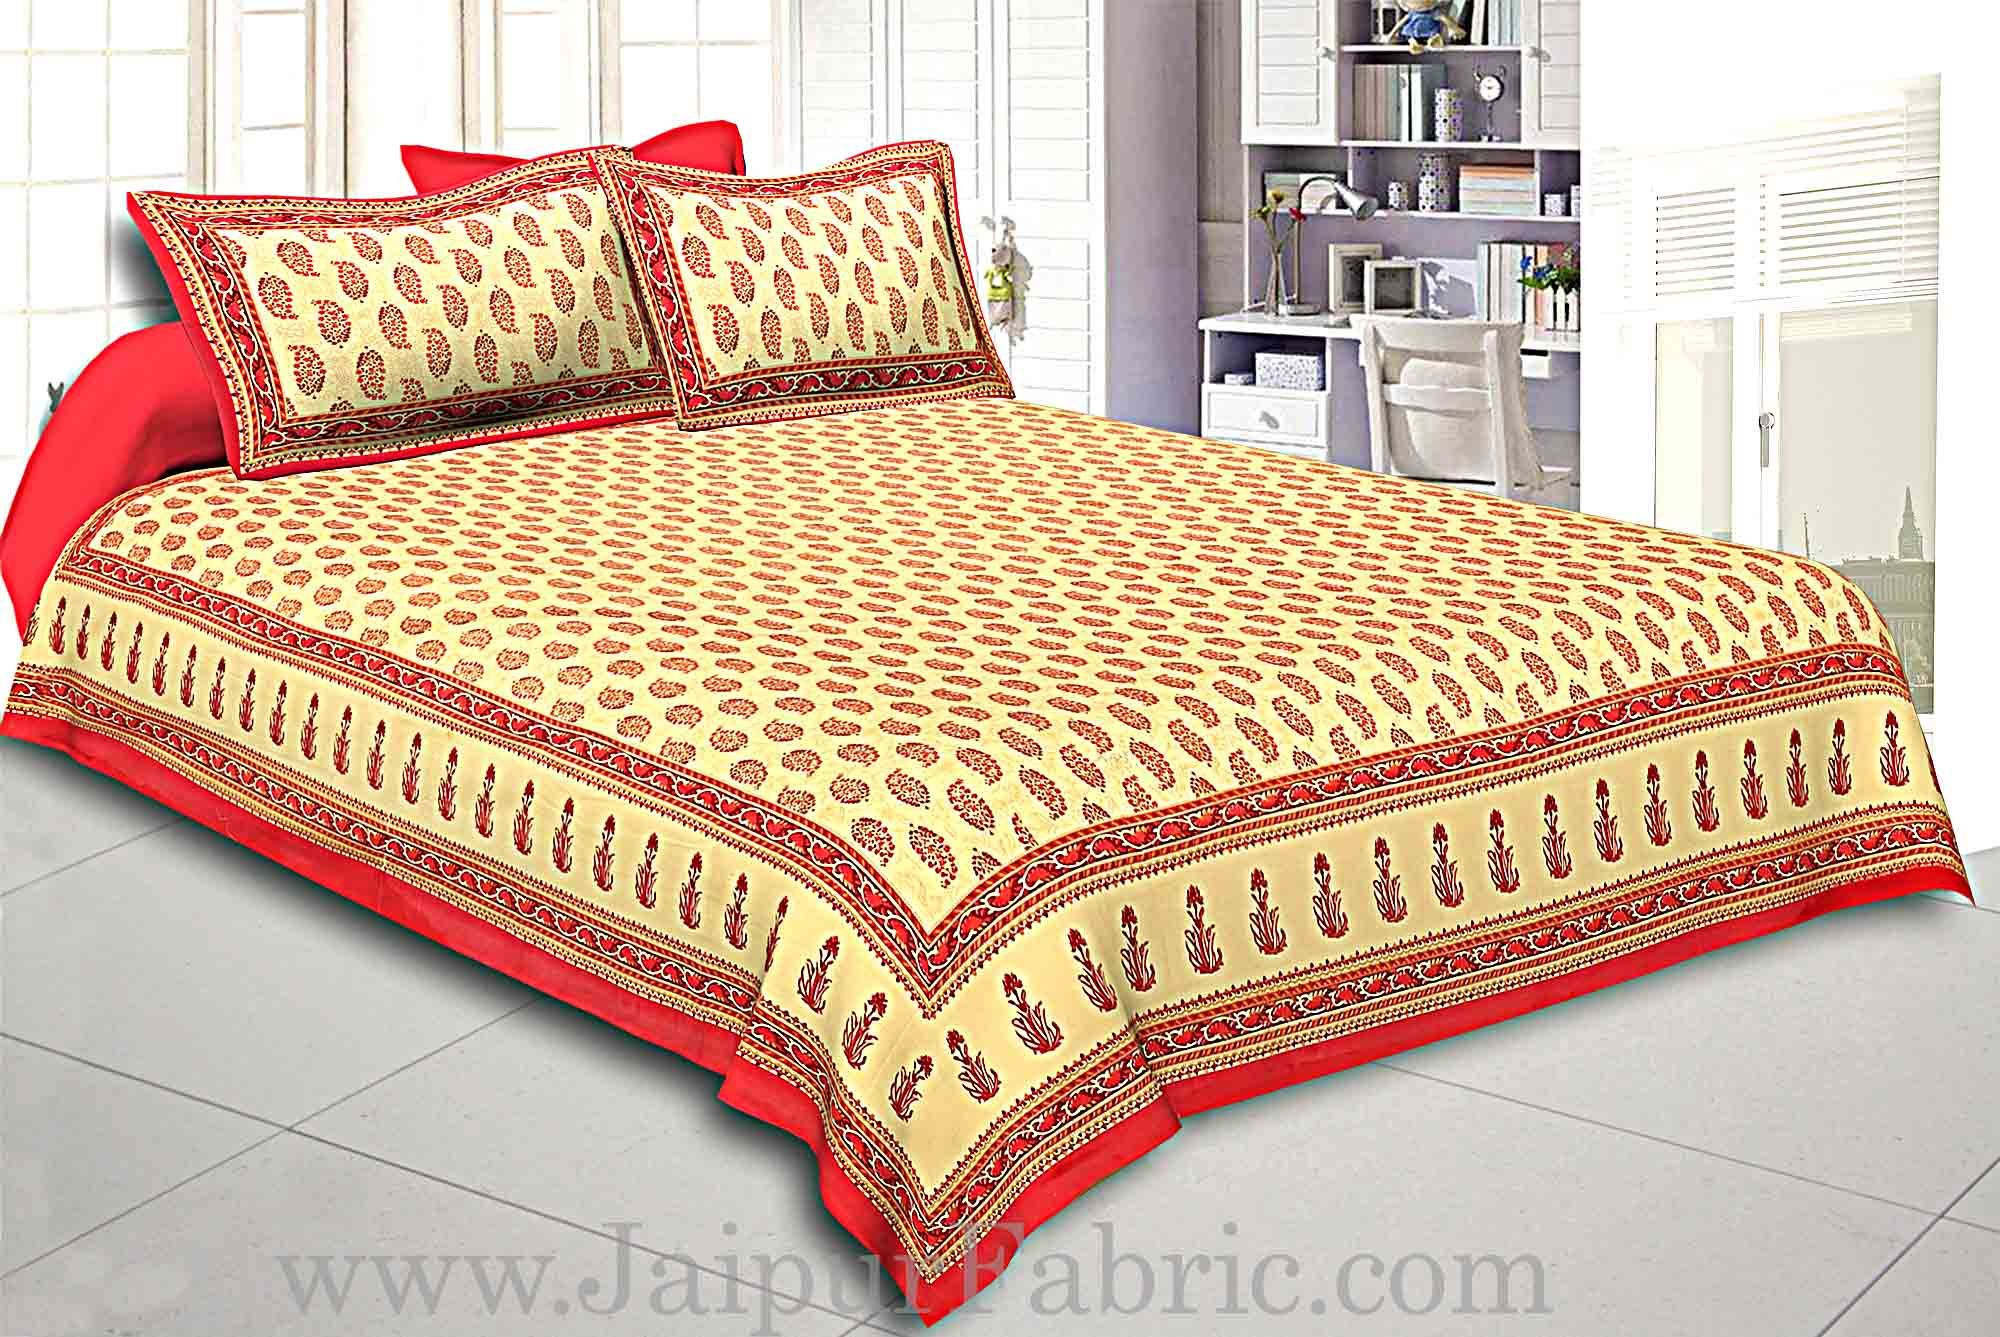 King Size Double Bedsheet  Hand Block Print Super Fine Cotton